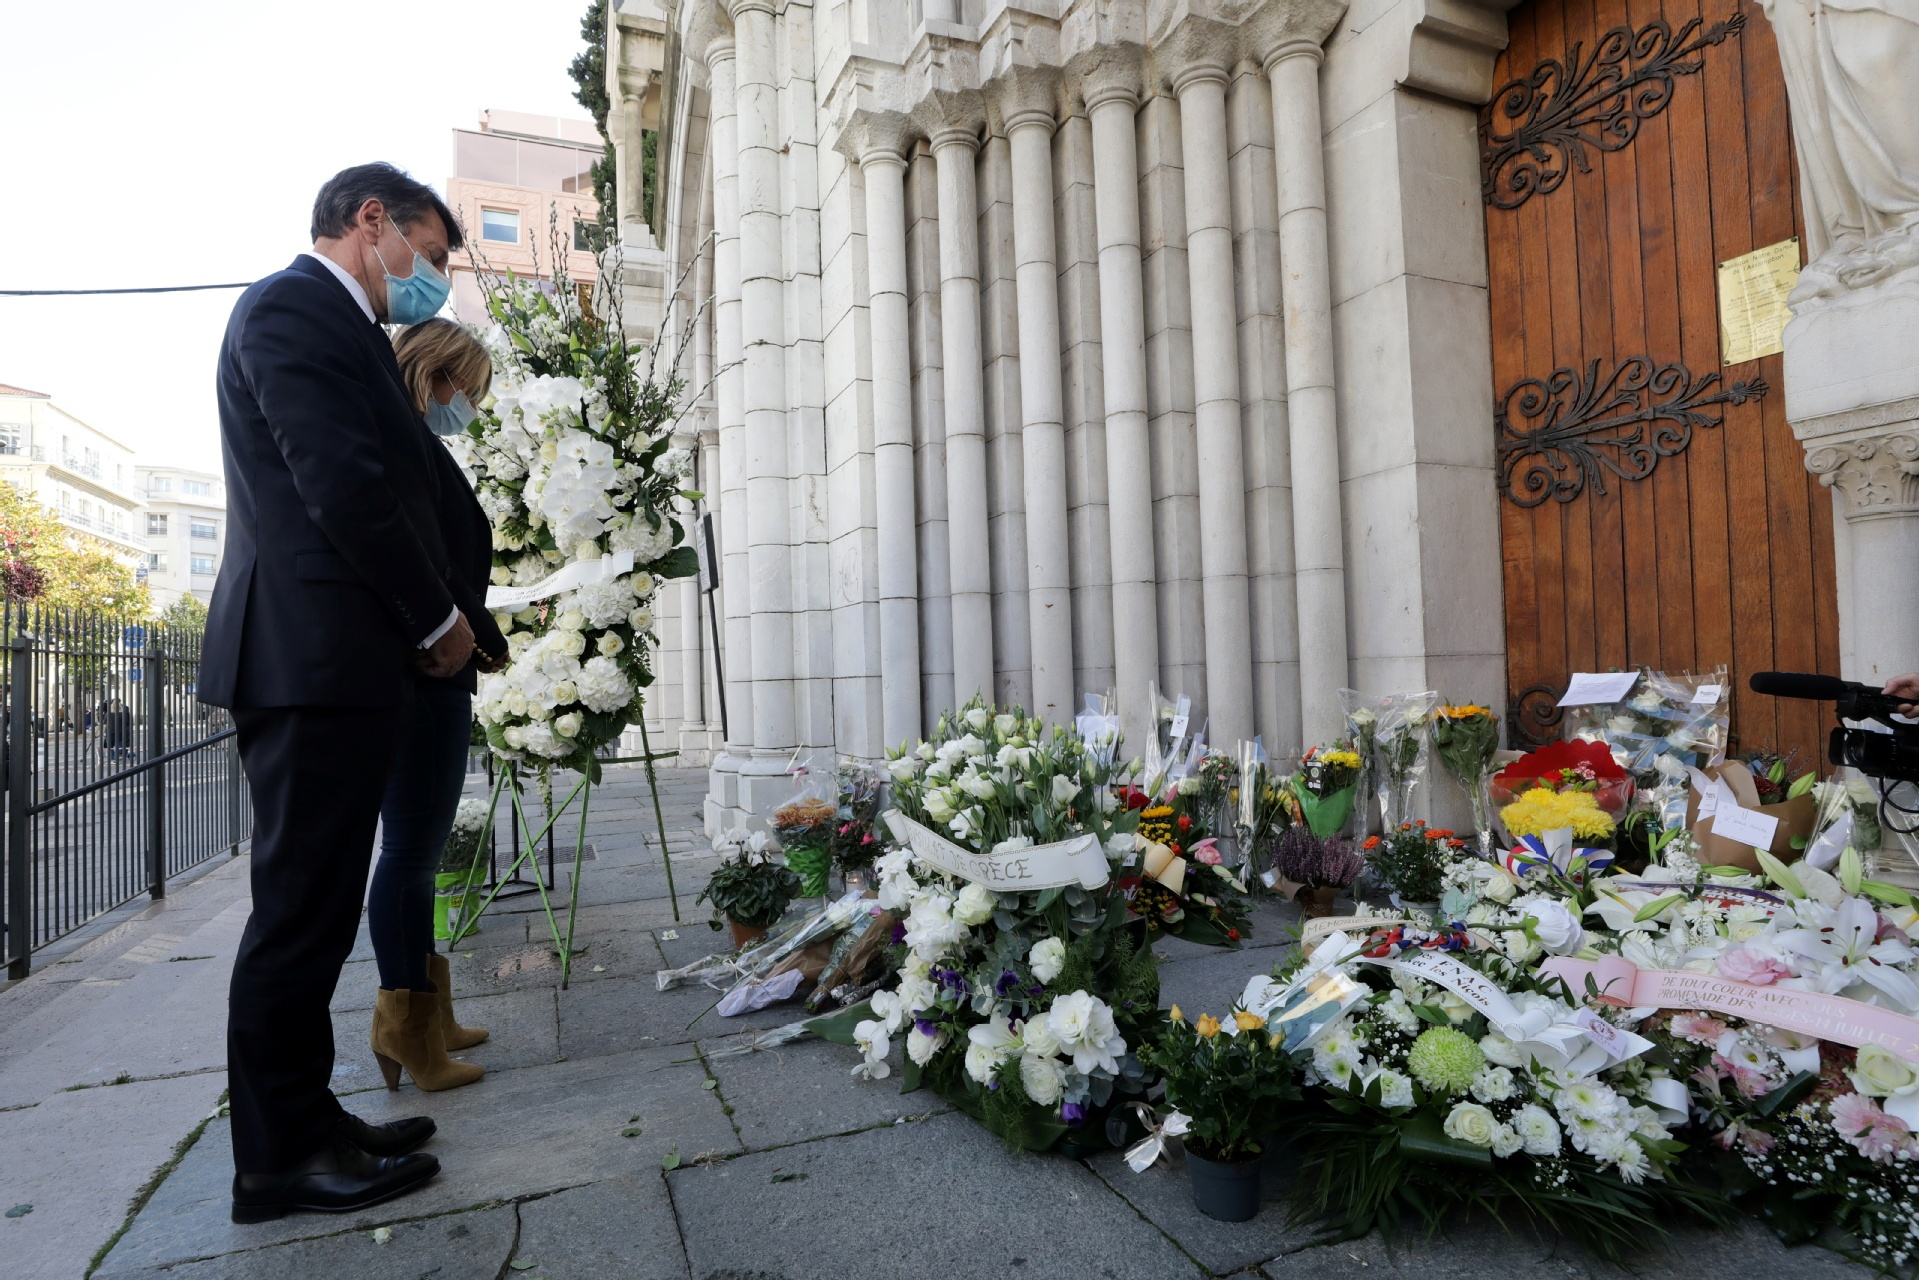 More France terror attacks likely: interior minister